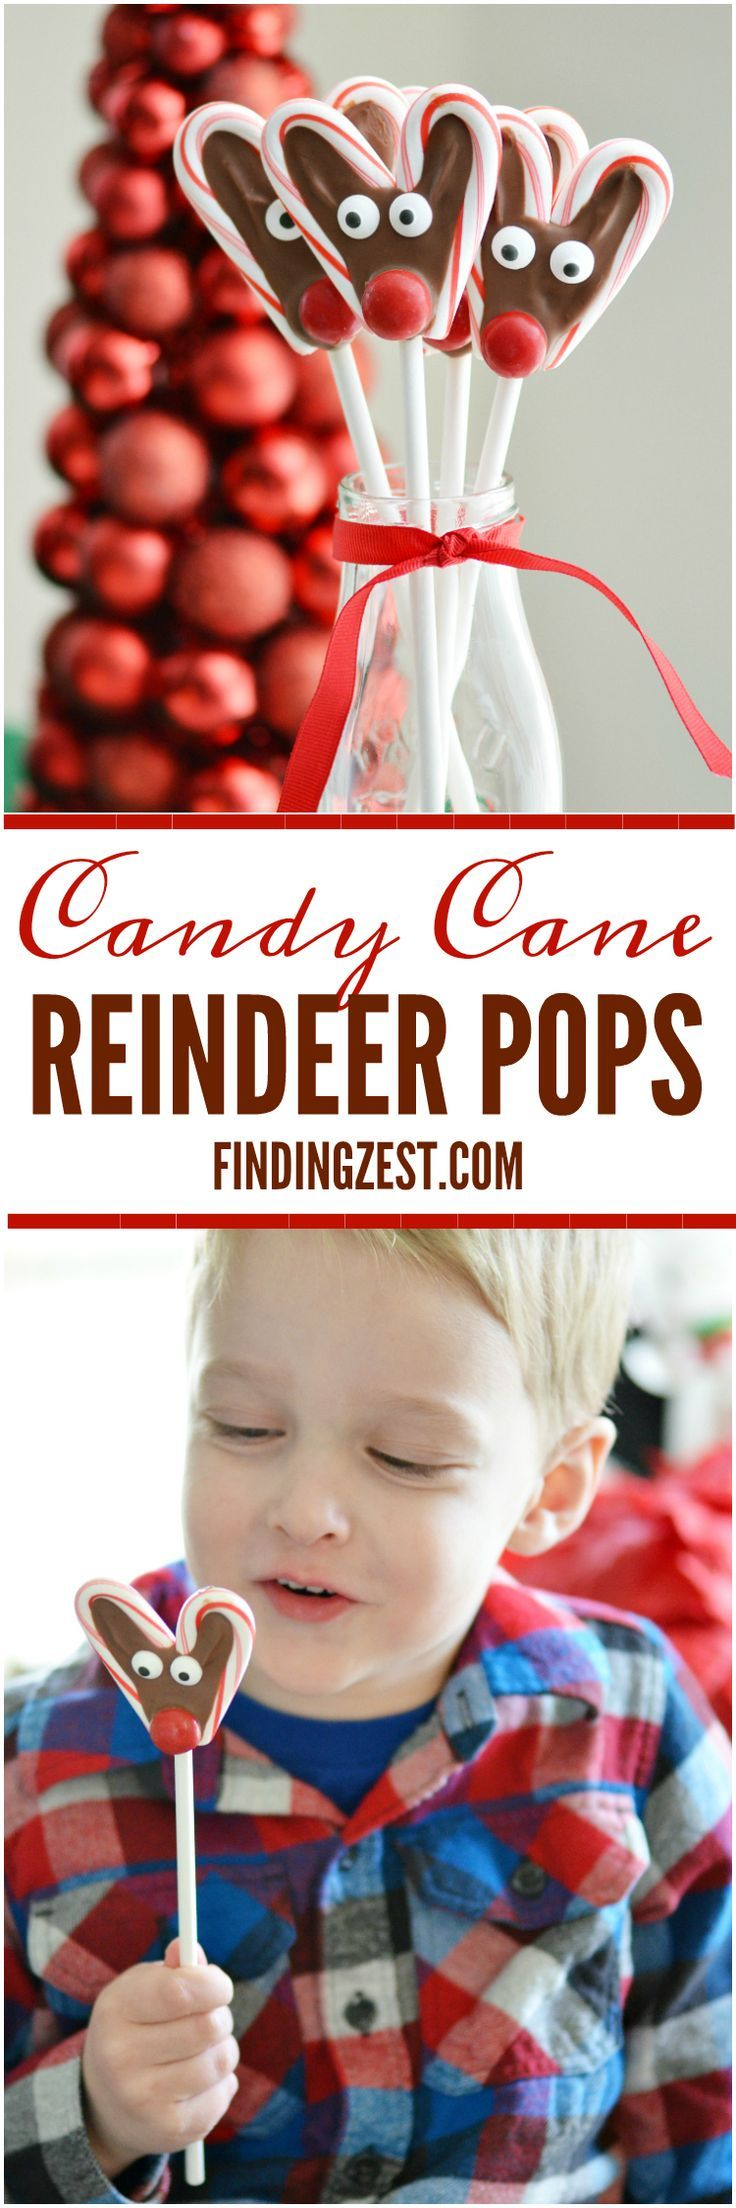 These no-bake Candy Cane Reindeer Pops are a fun holiday treat. They are easy and a great homemade food gift that kids can help you make!